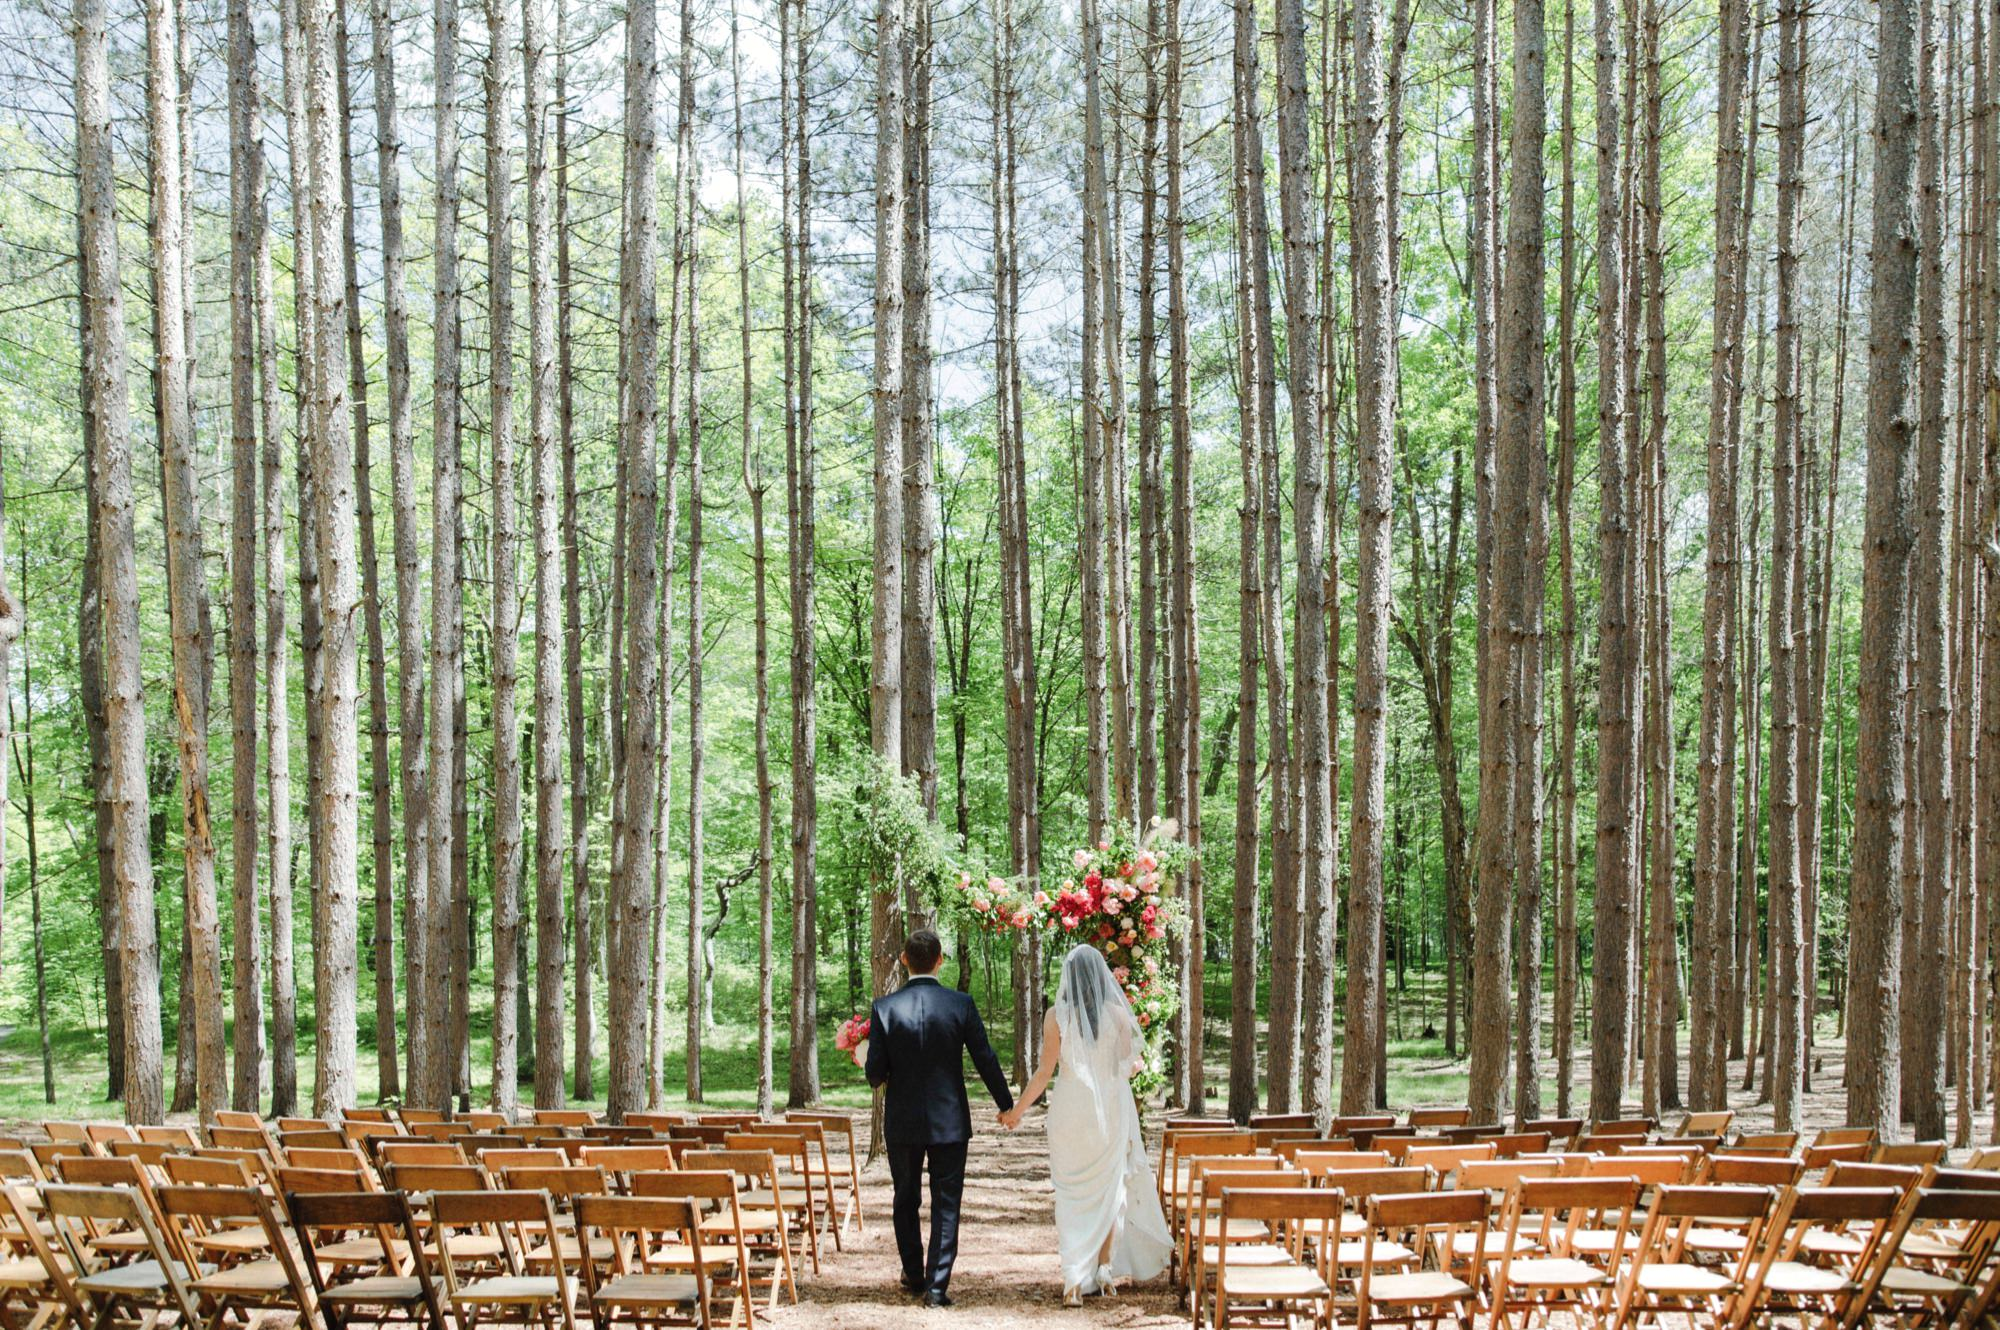 Ceremony setup at The Pine Grove at Roxbury Barn Estate in the Catskills New York